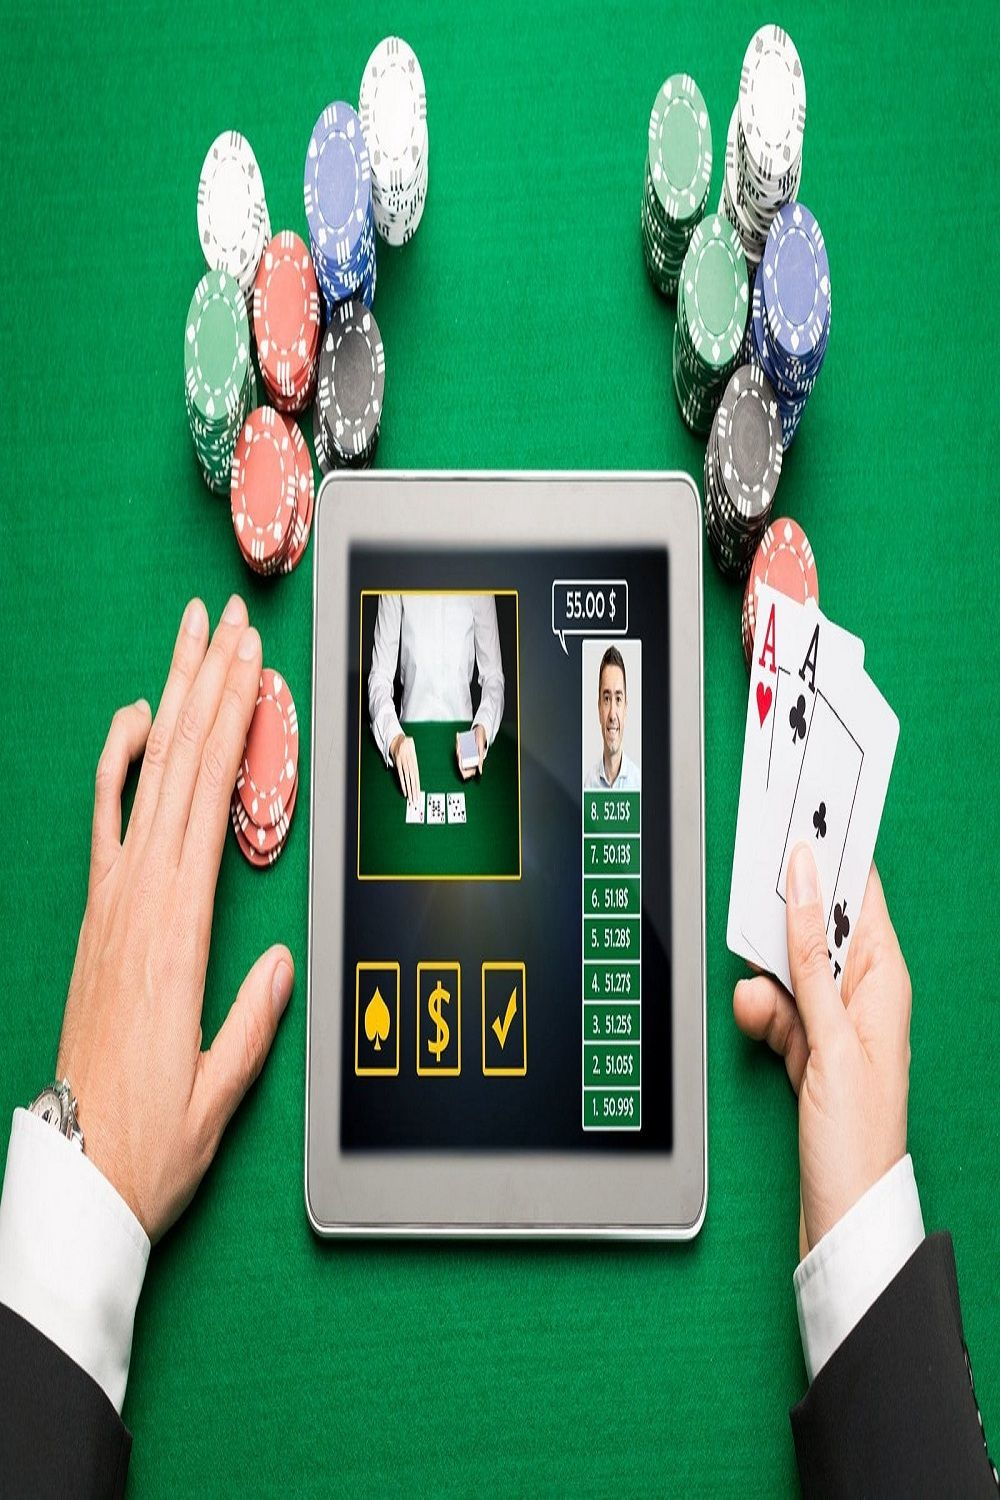 Idn Poker For Pc Apk Android And Ios Free Download 2021 2022 In 2021 Gambling Casino Online Poker